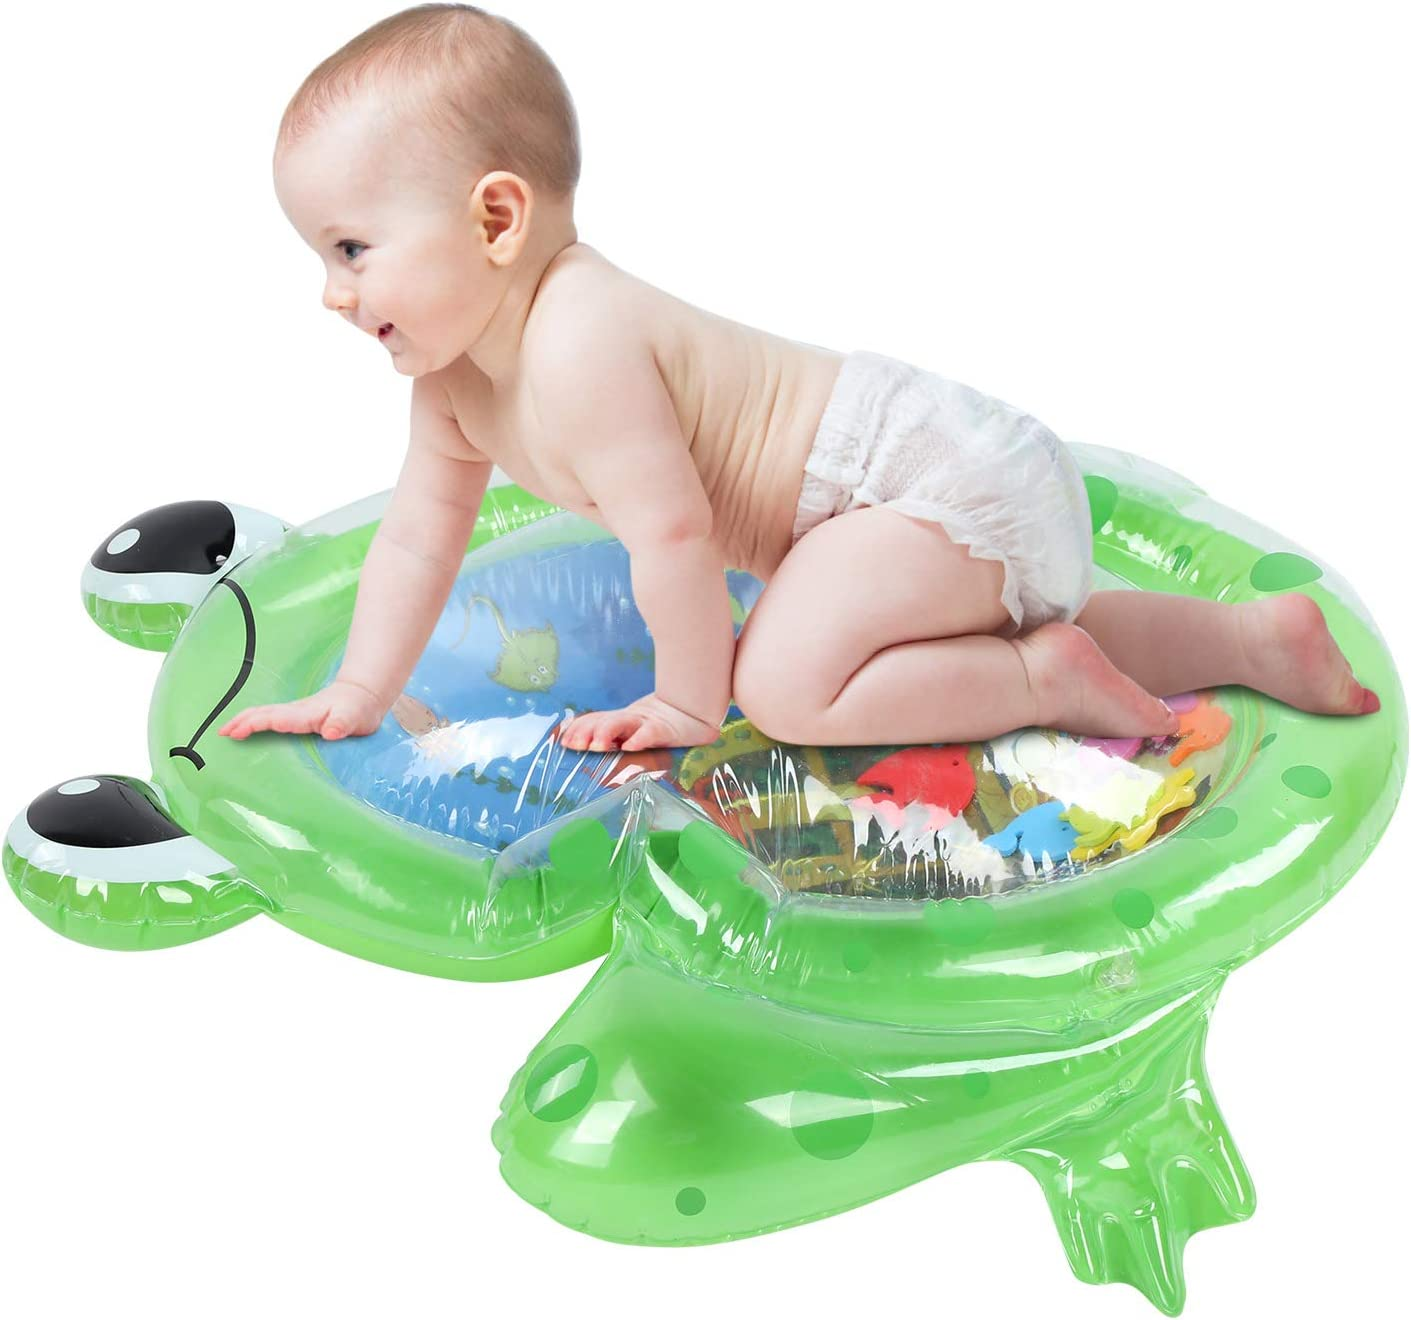 Max 60% Super special price OFF Leftwei Kids Inflatable Tummy Time and Infants Premium Water mat